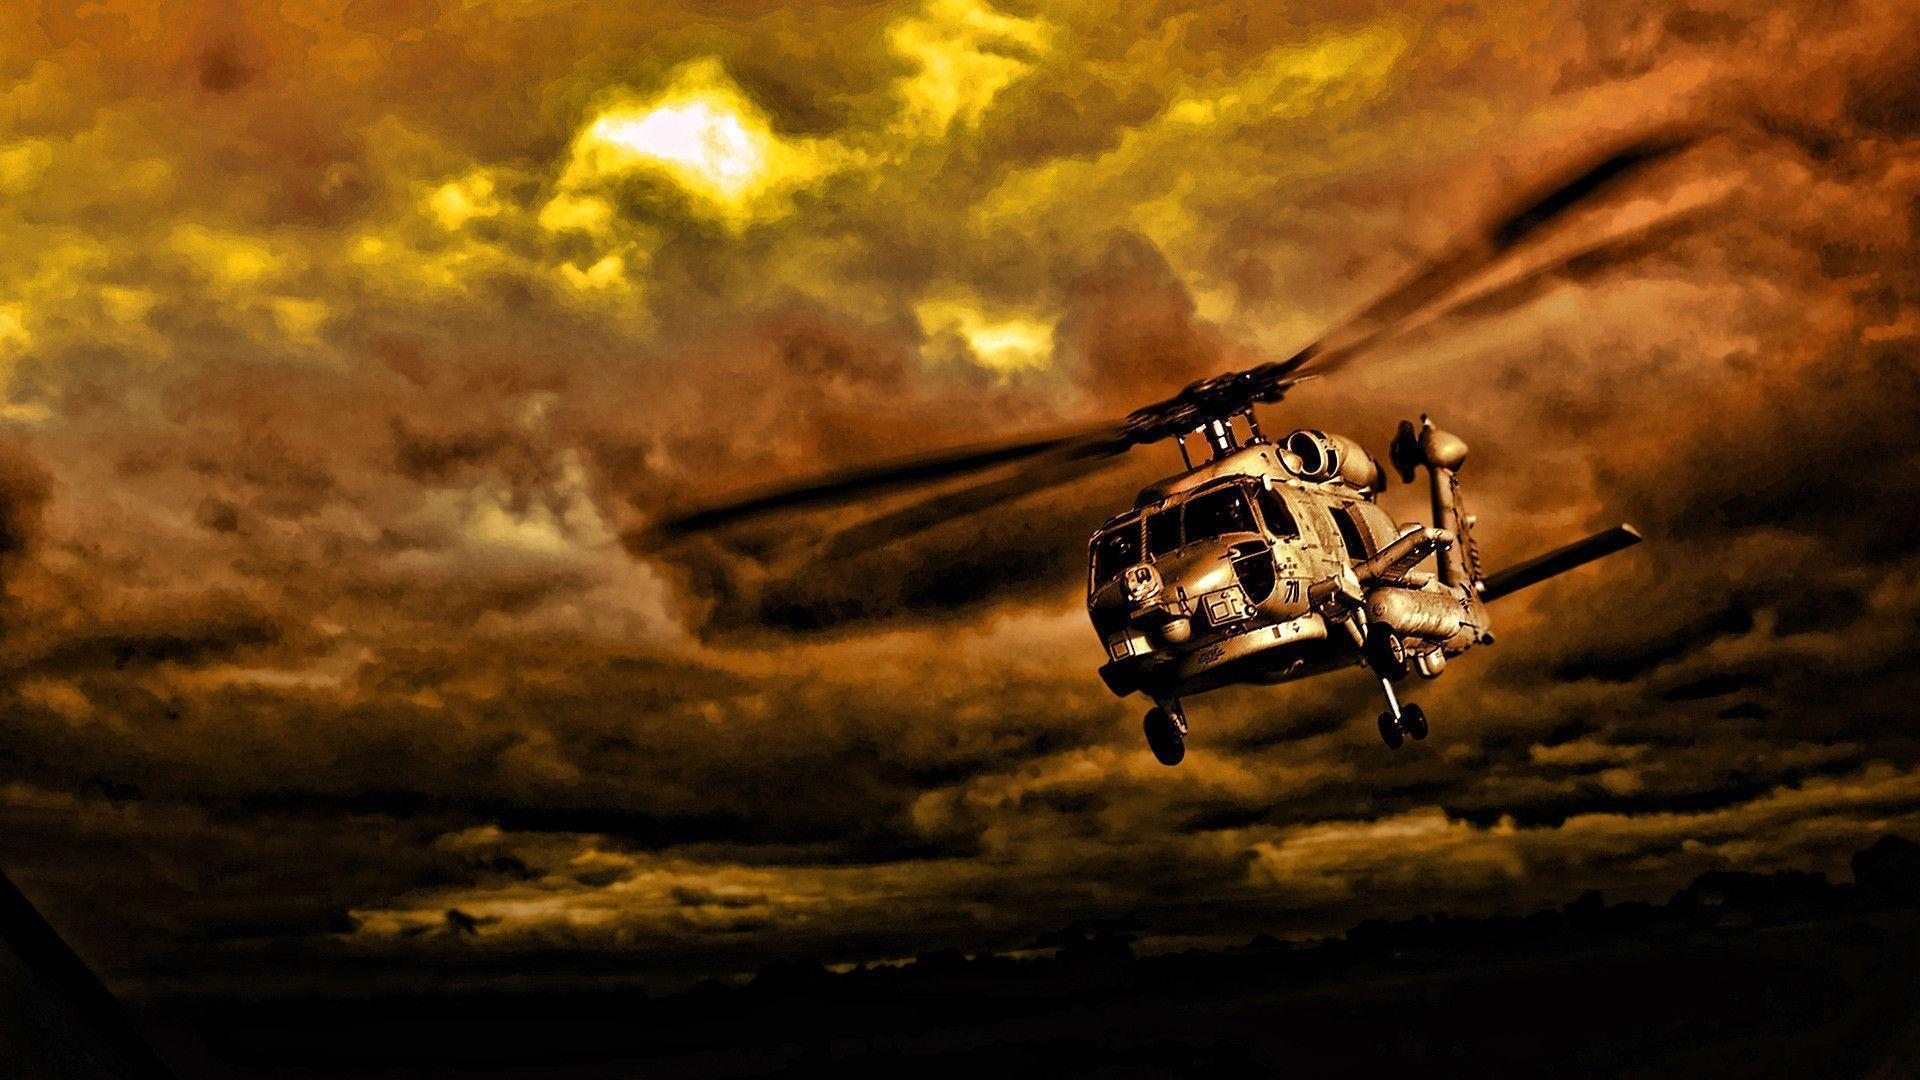 Military Helicopters Wallpapers - Wallpaper Cave